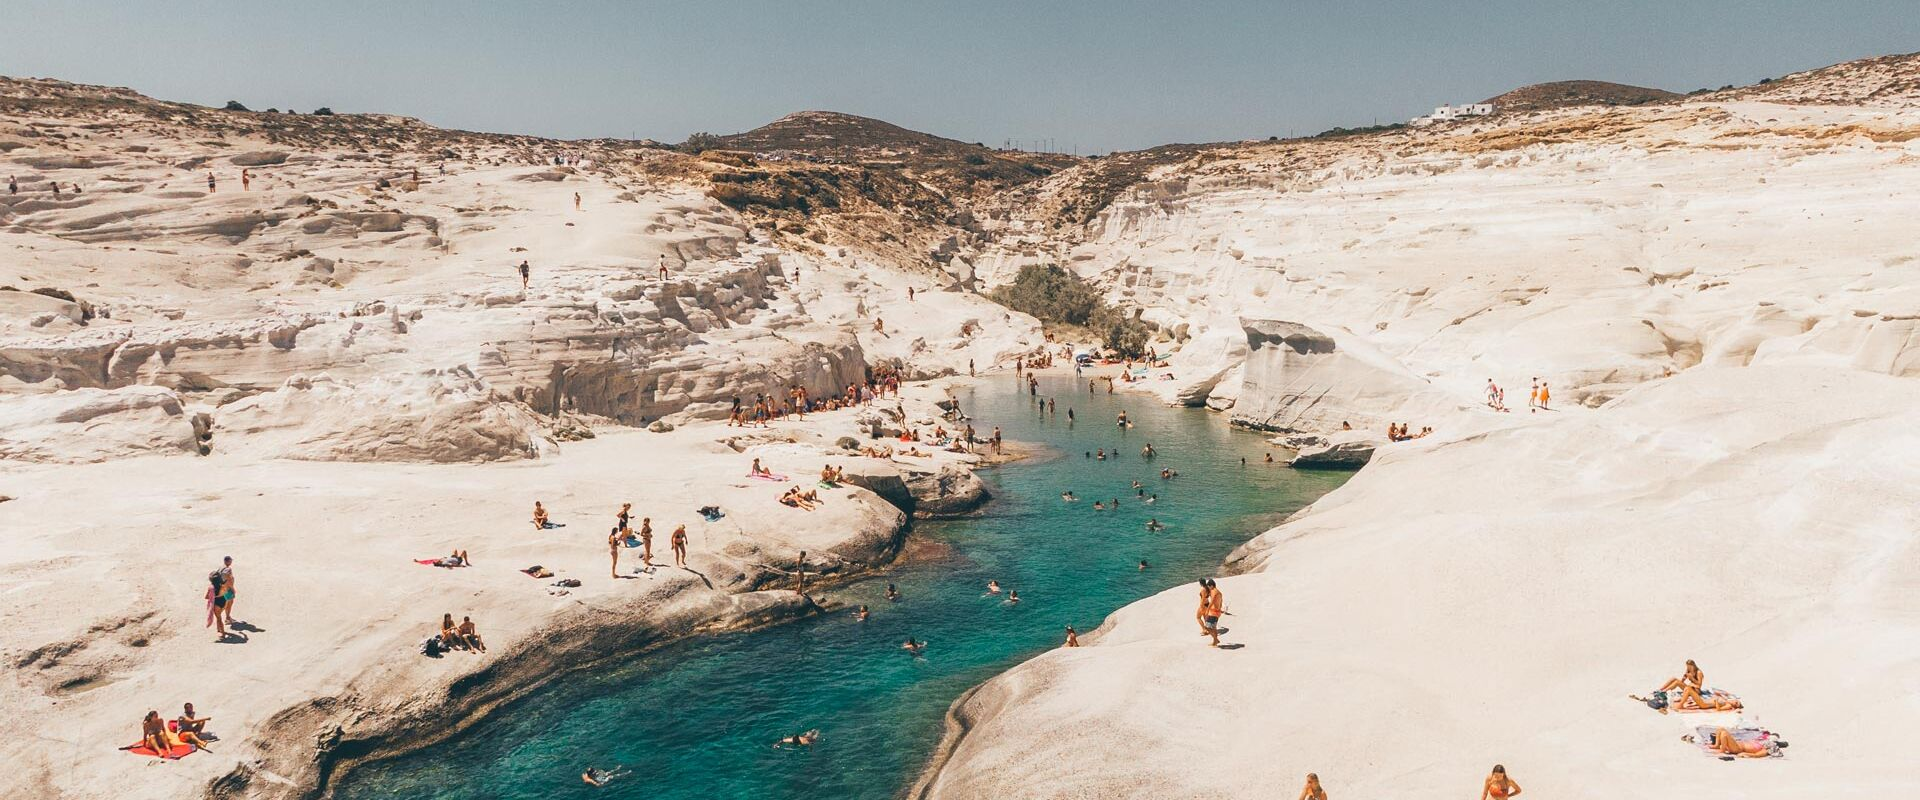 In Sarakiniko, you can literally spend a whole day lazing on the rocks